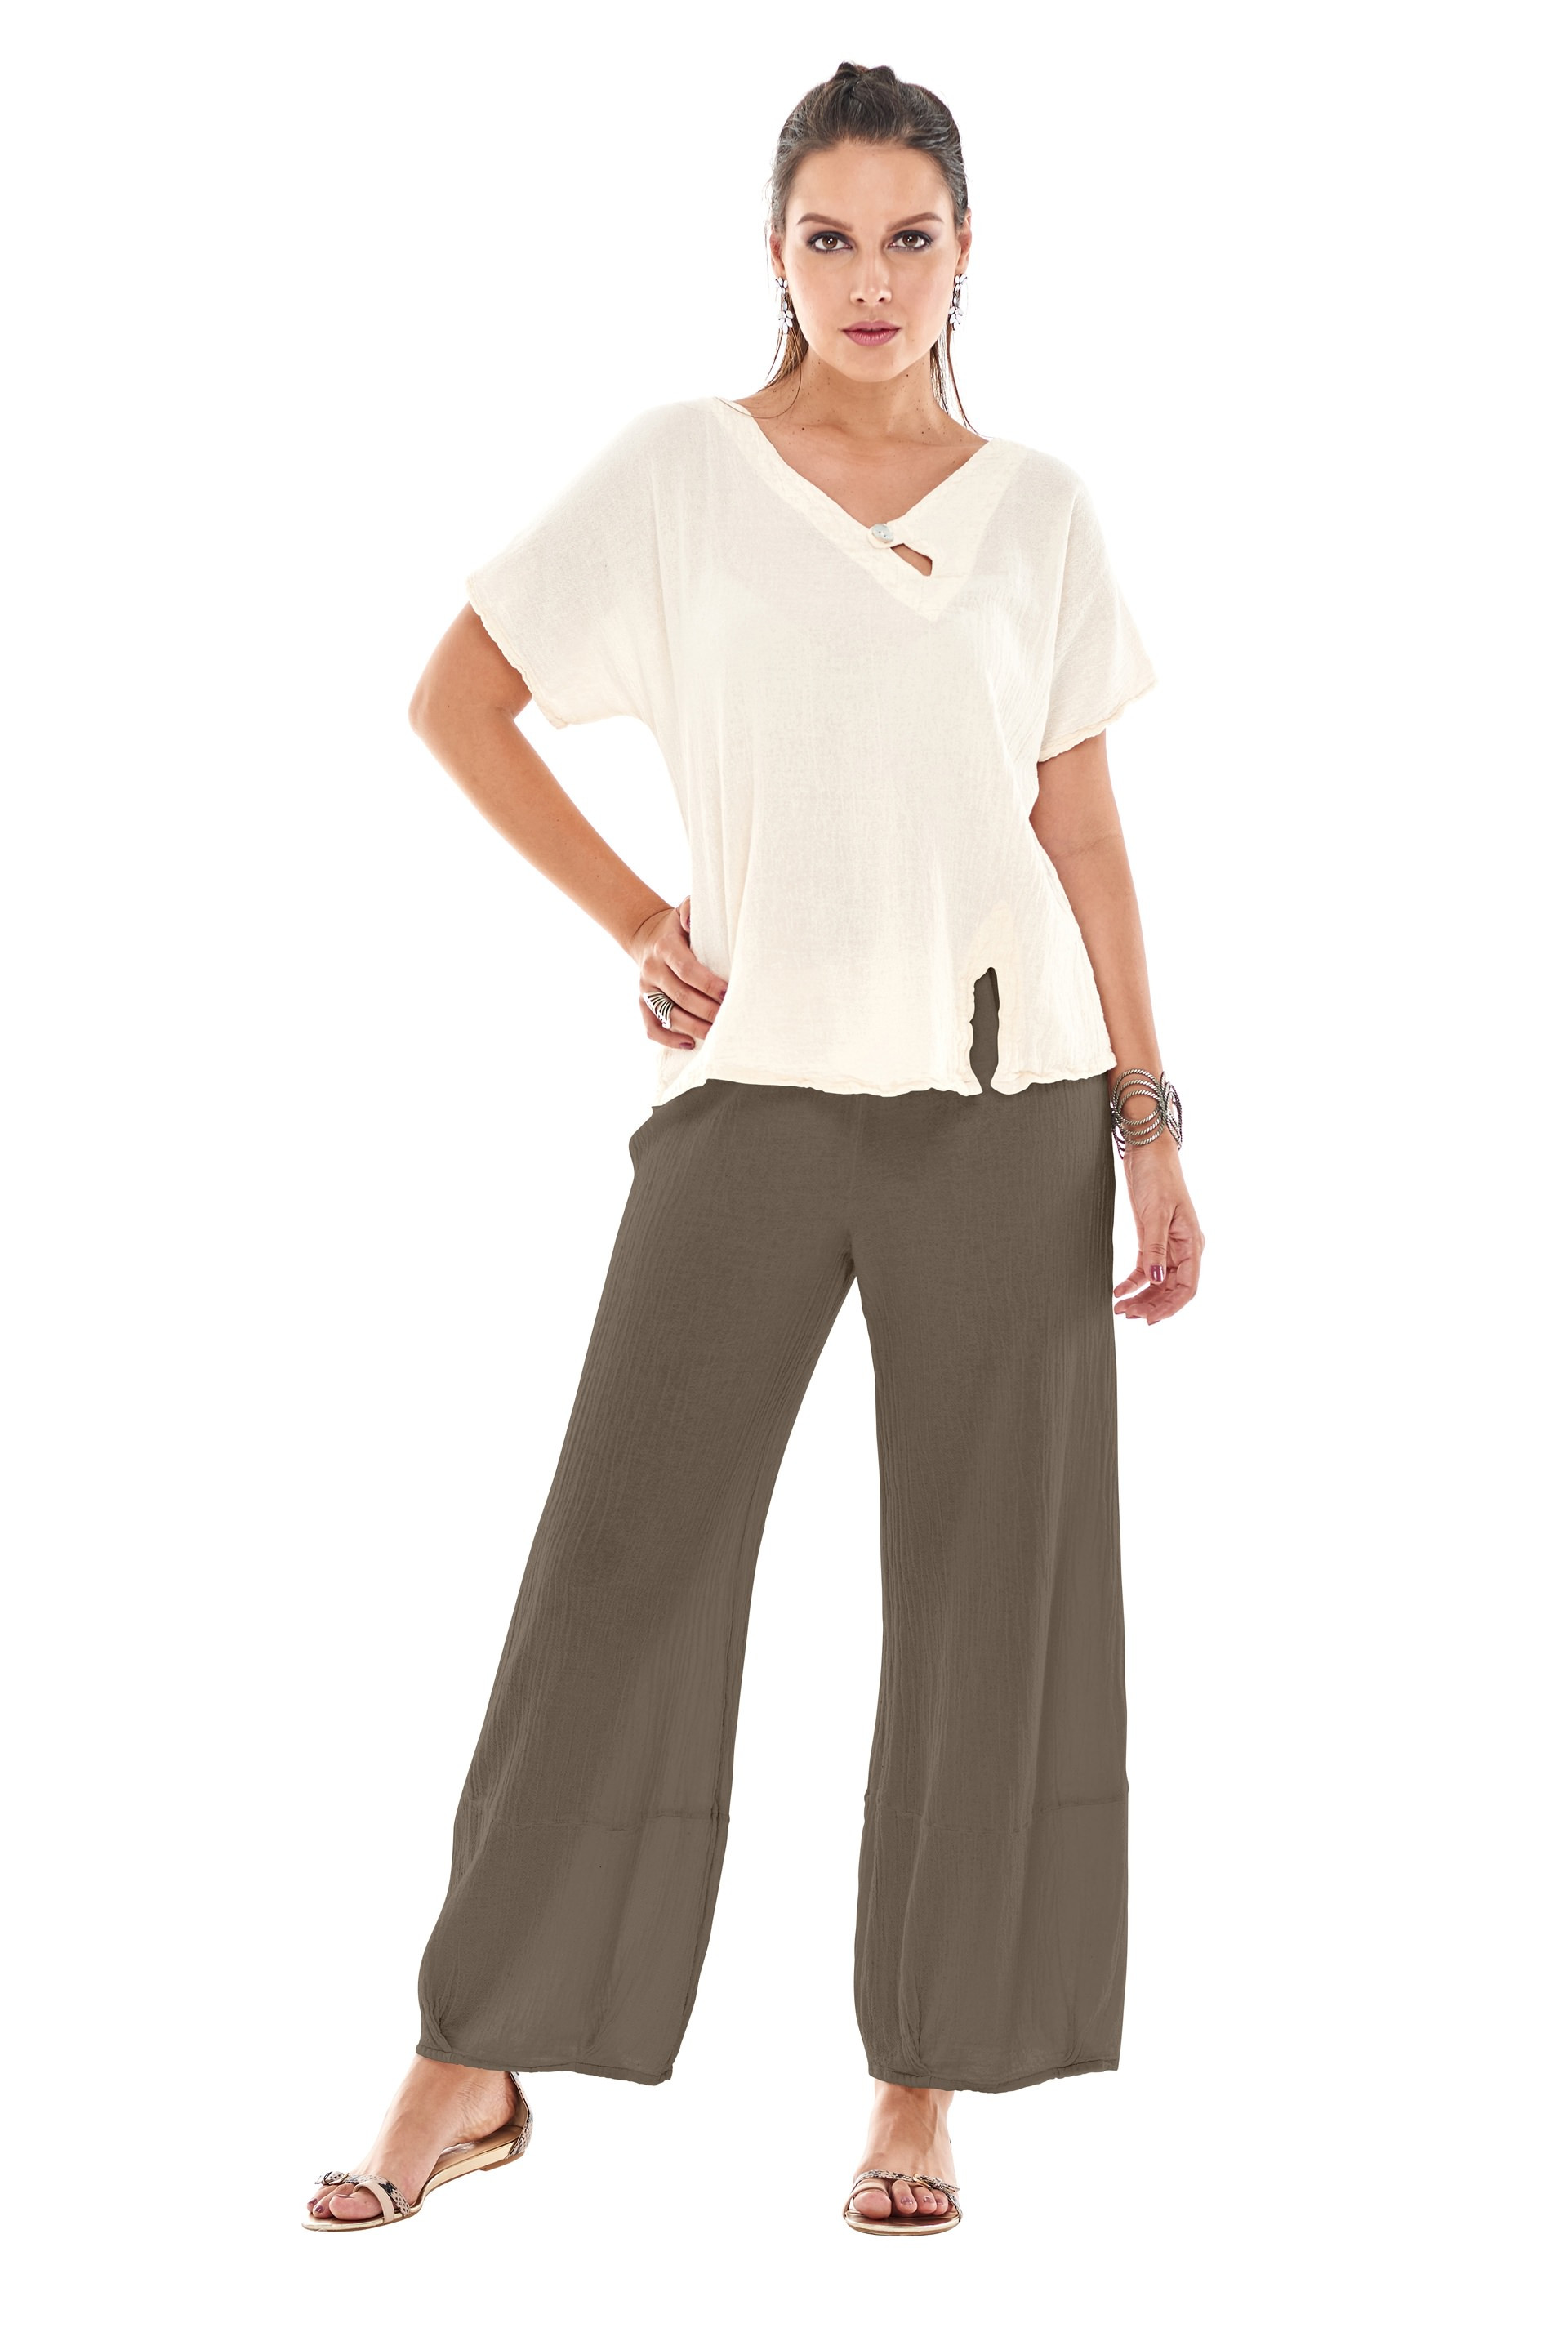 OMG - A loose legged cotton gauze pant with a tucked hemline and harem appearance.